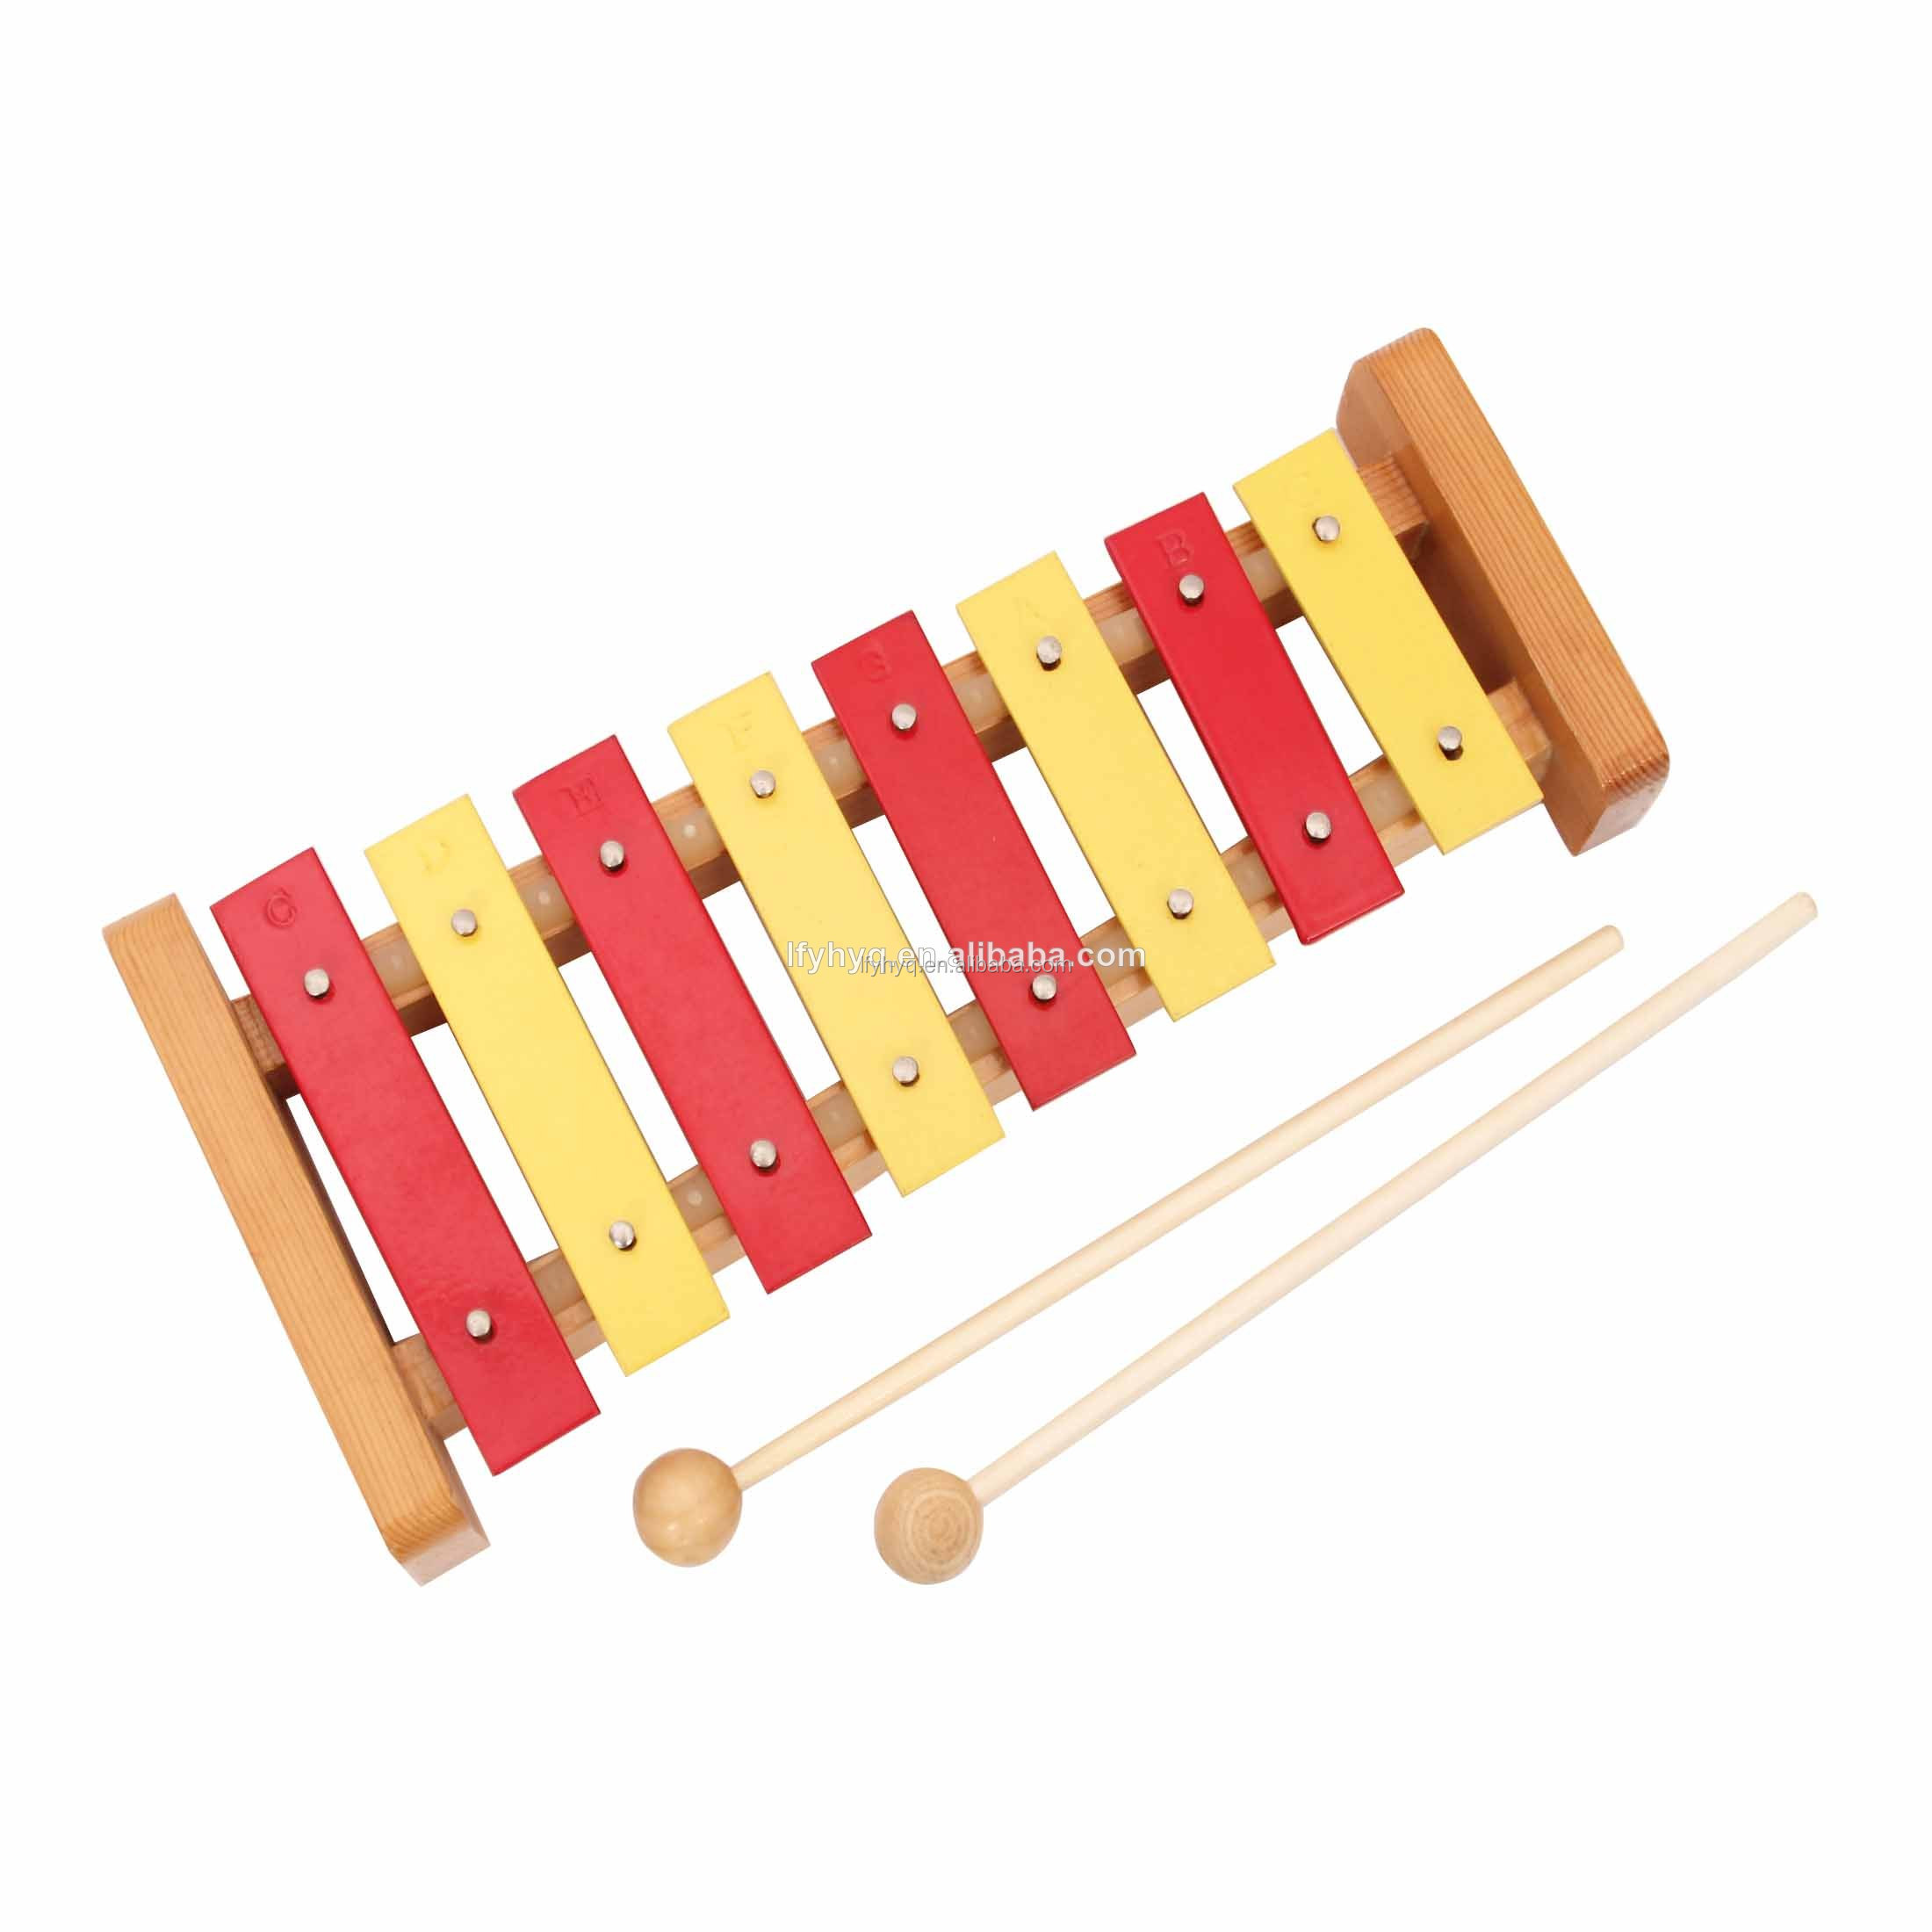 8 key musical instrument glockenspiel with wood base